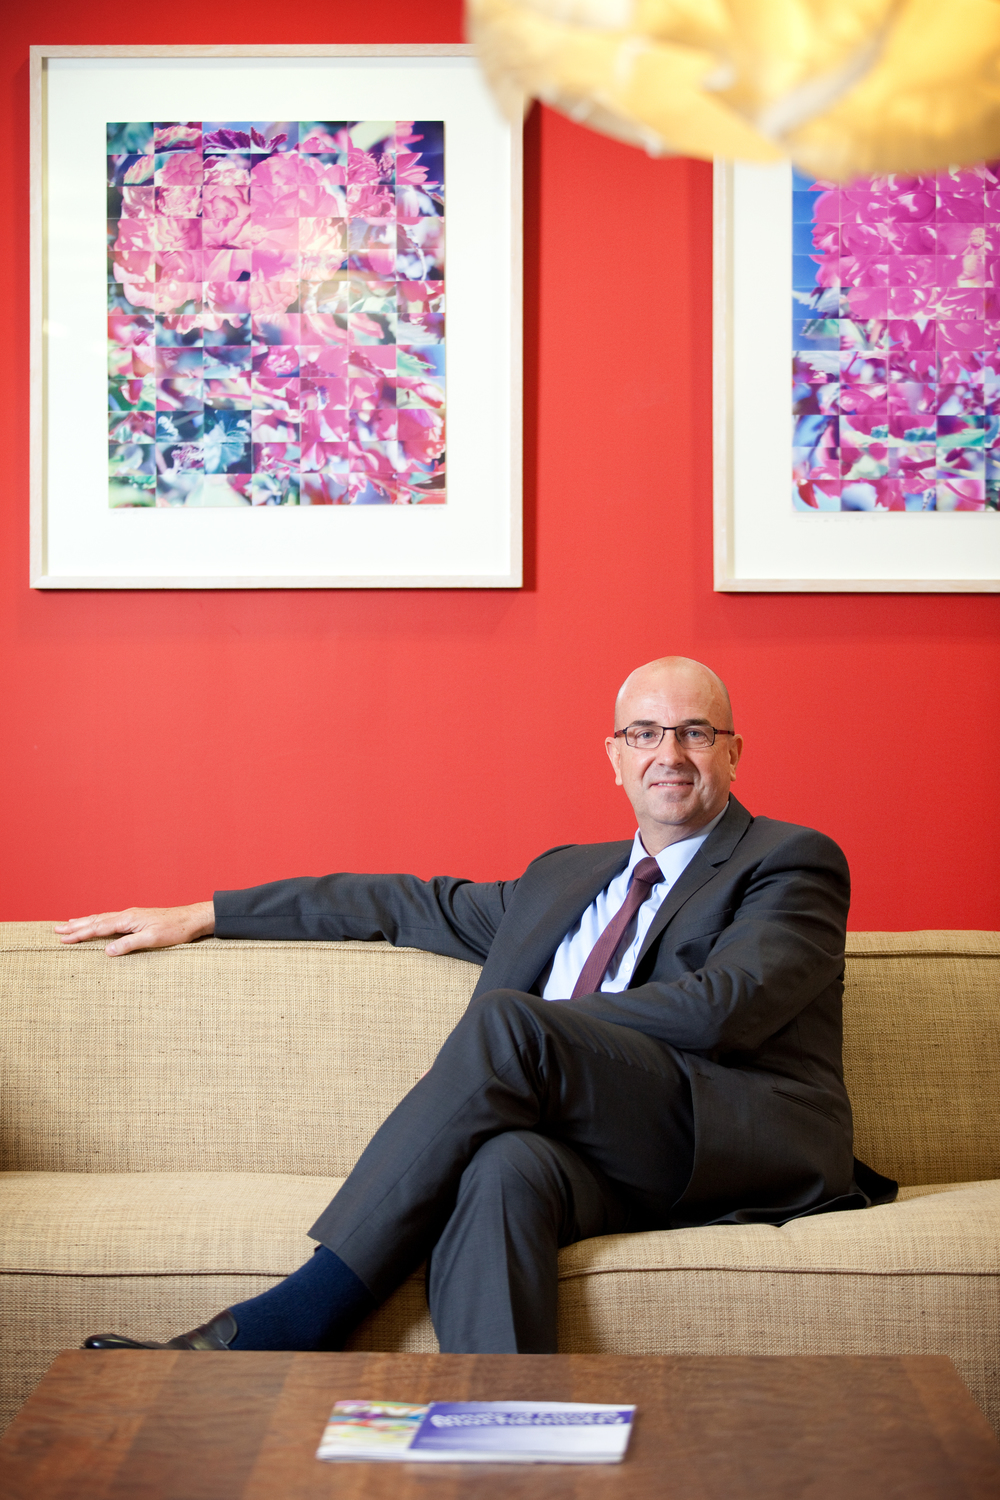 CEO, Roche Diagnostics